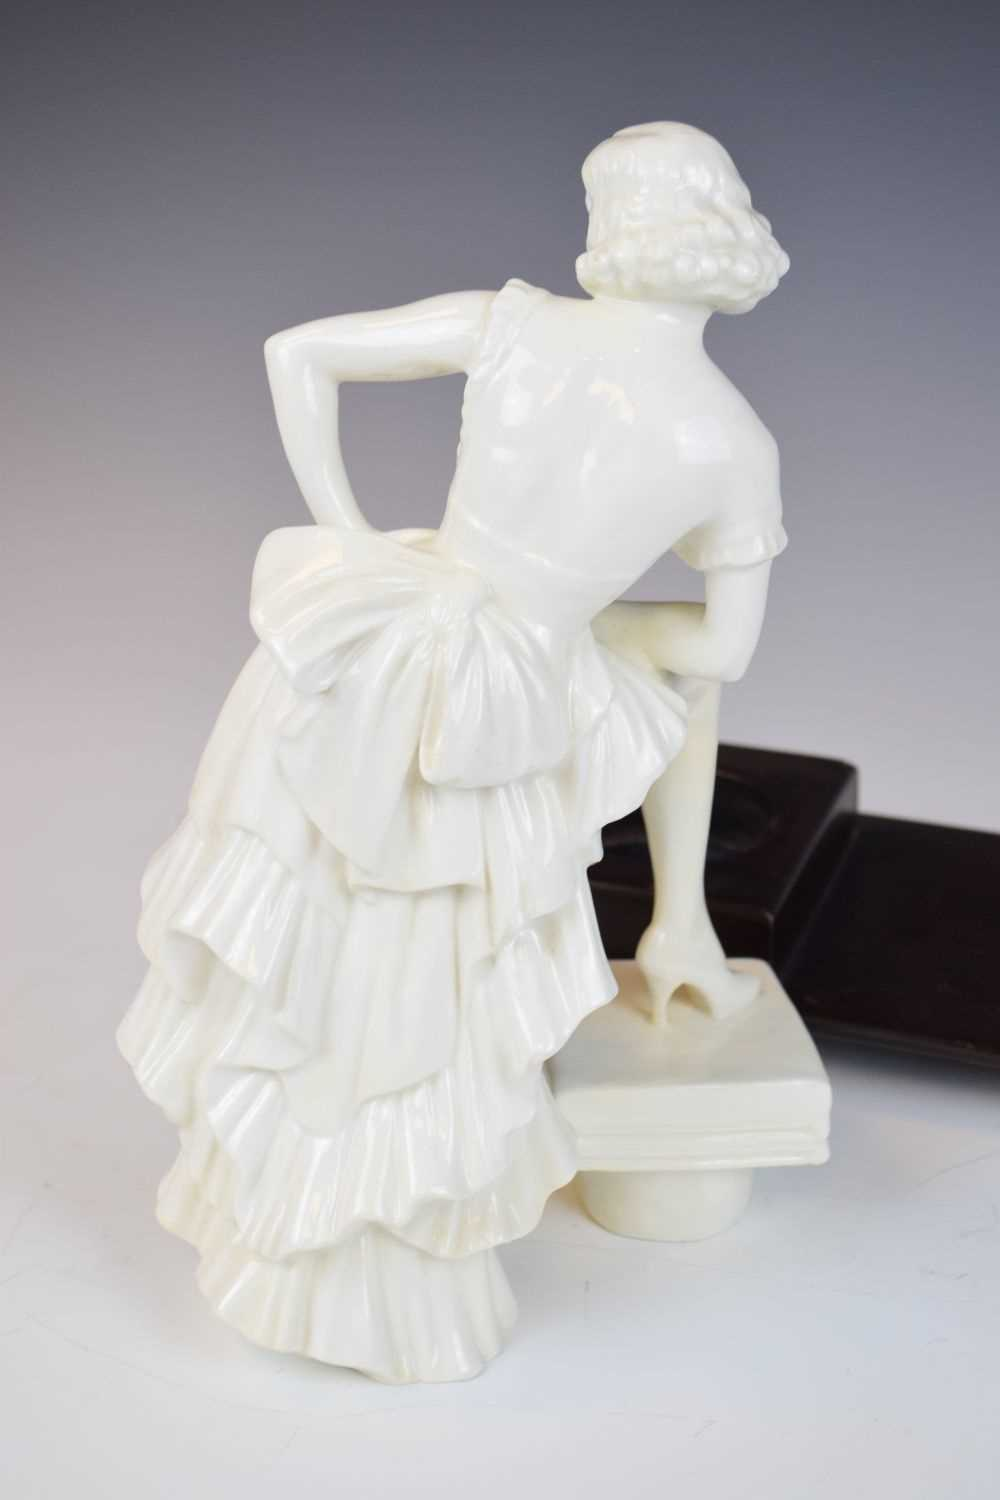 Royal Crown Derby figure of Anny Ahlers - Image 5 of 10